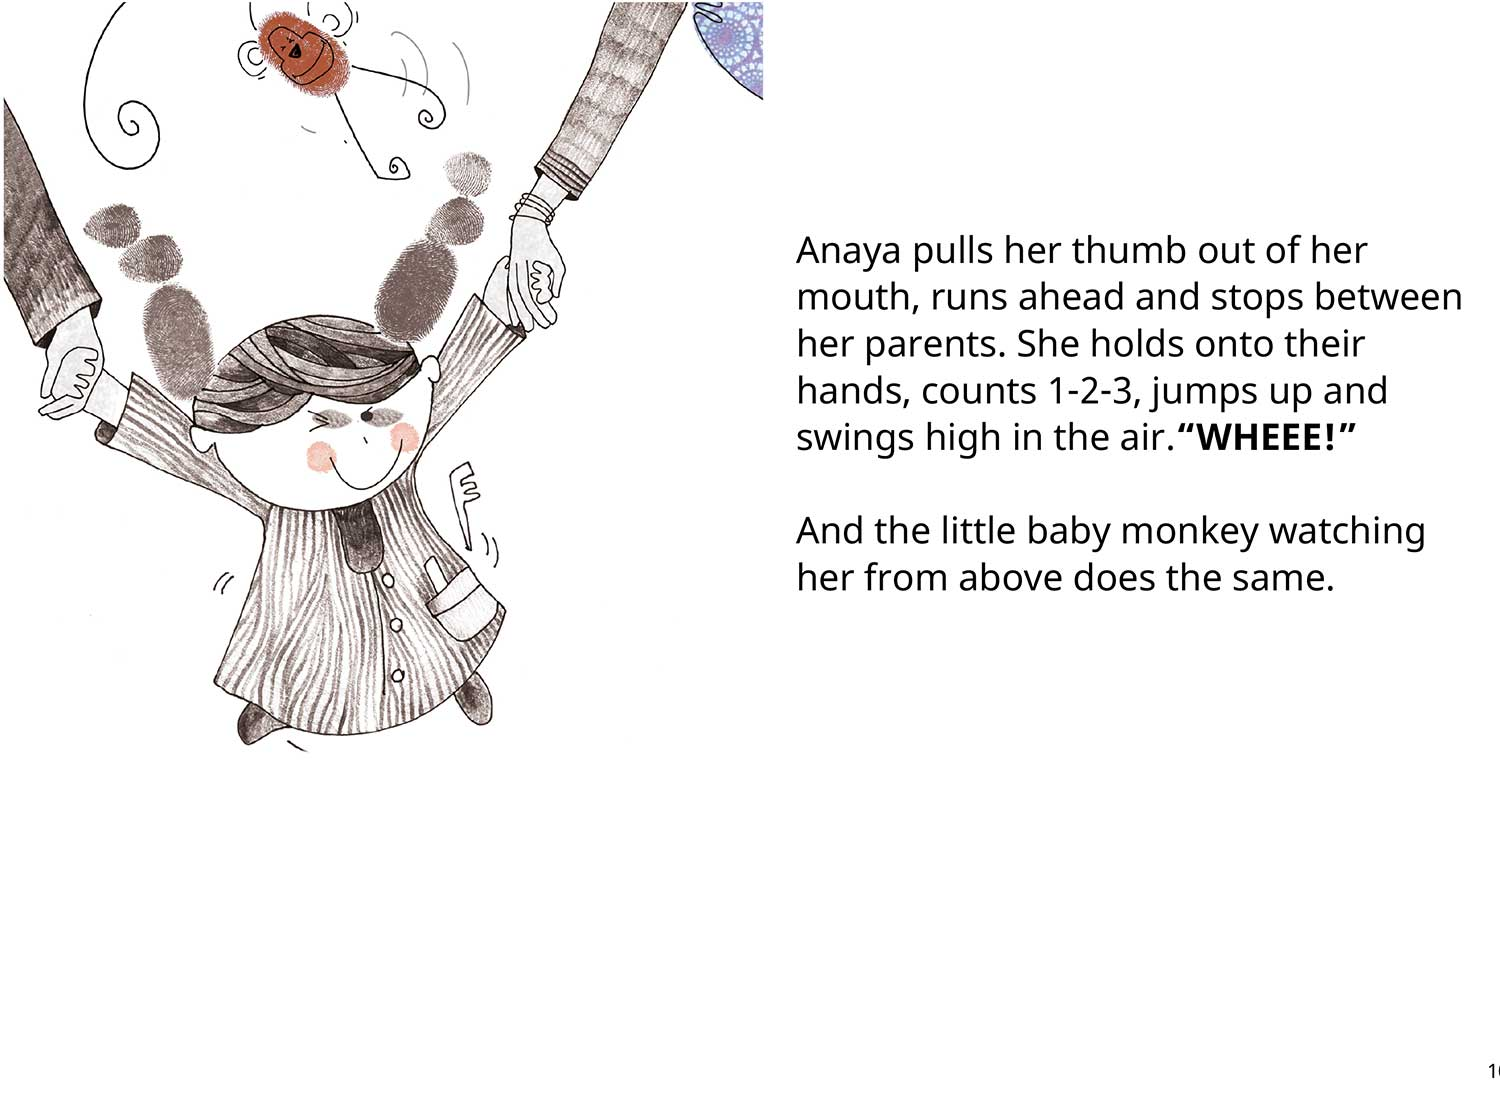 Anaya's Thumb Free toddler's story book - page 9